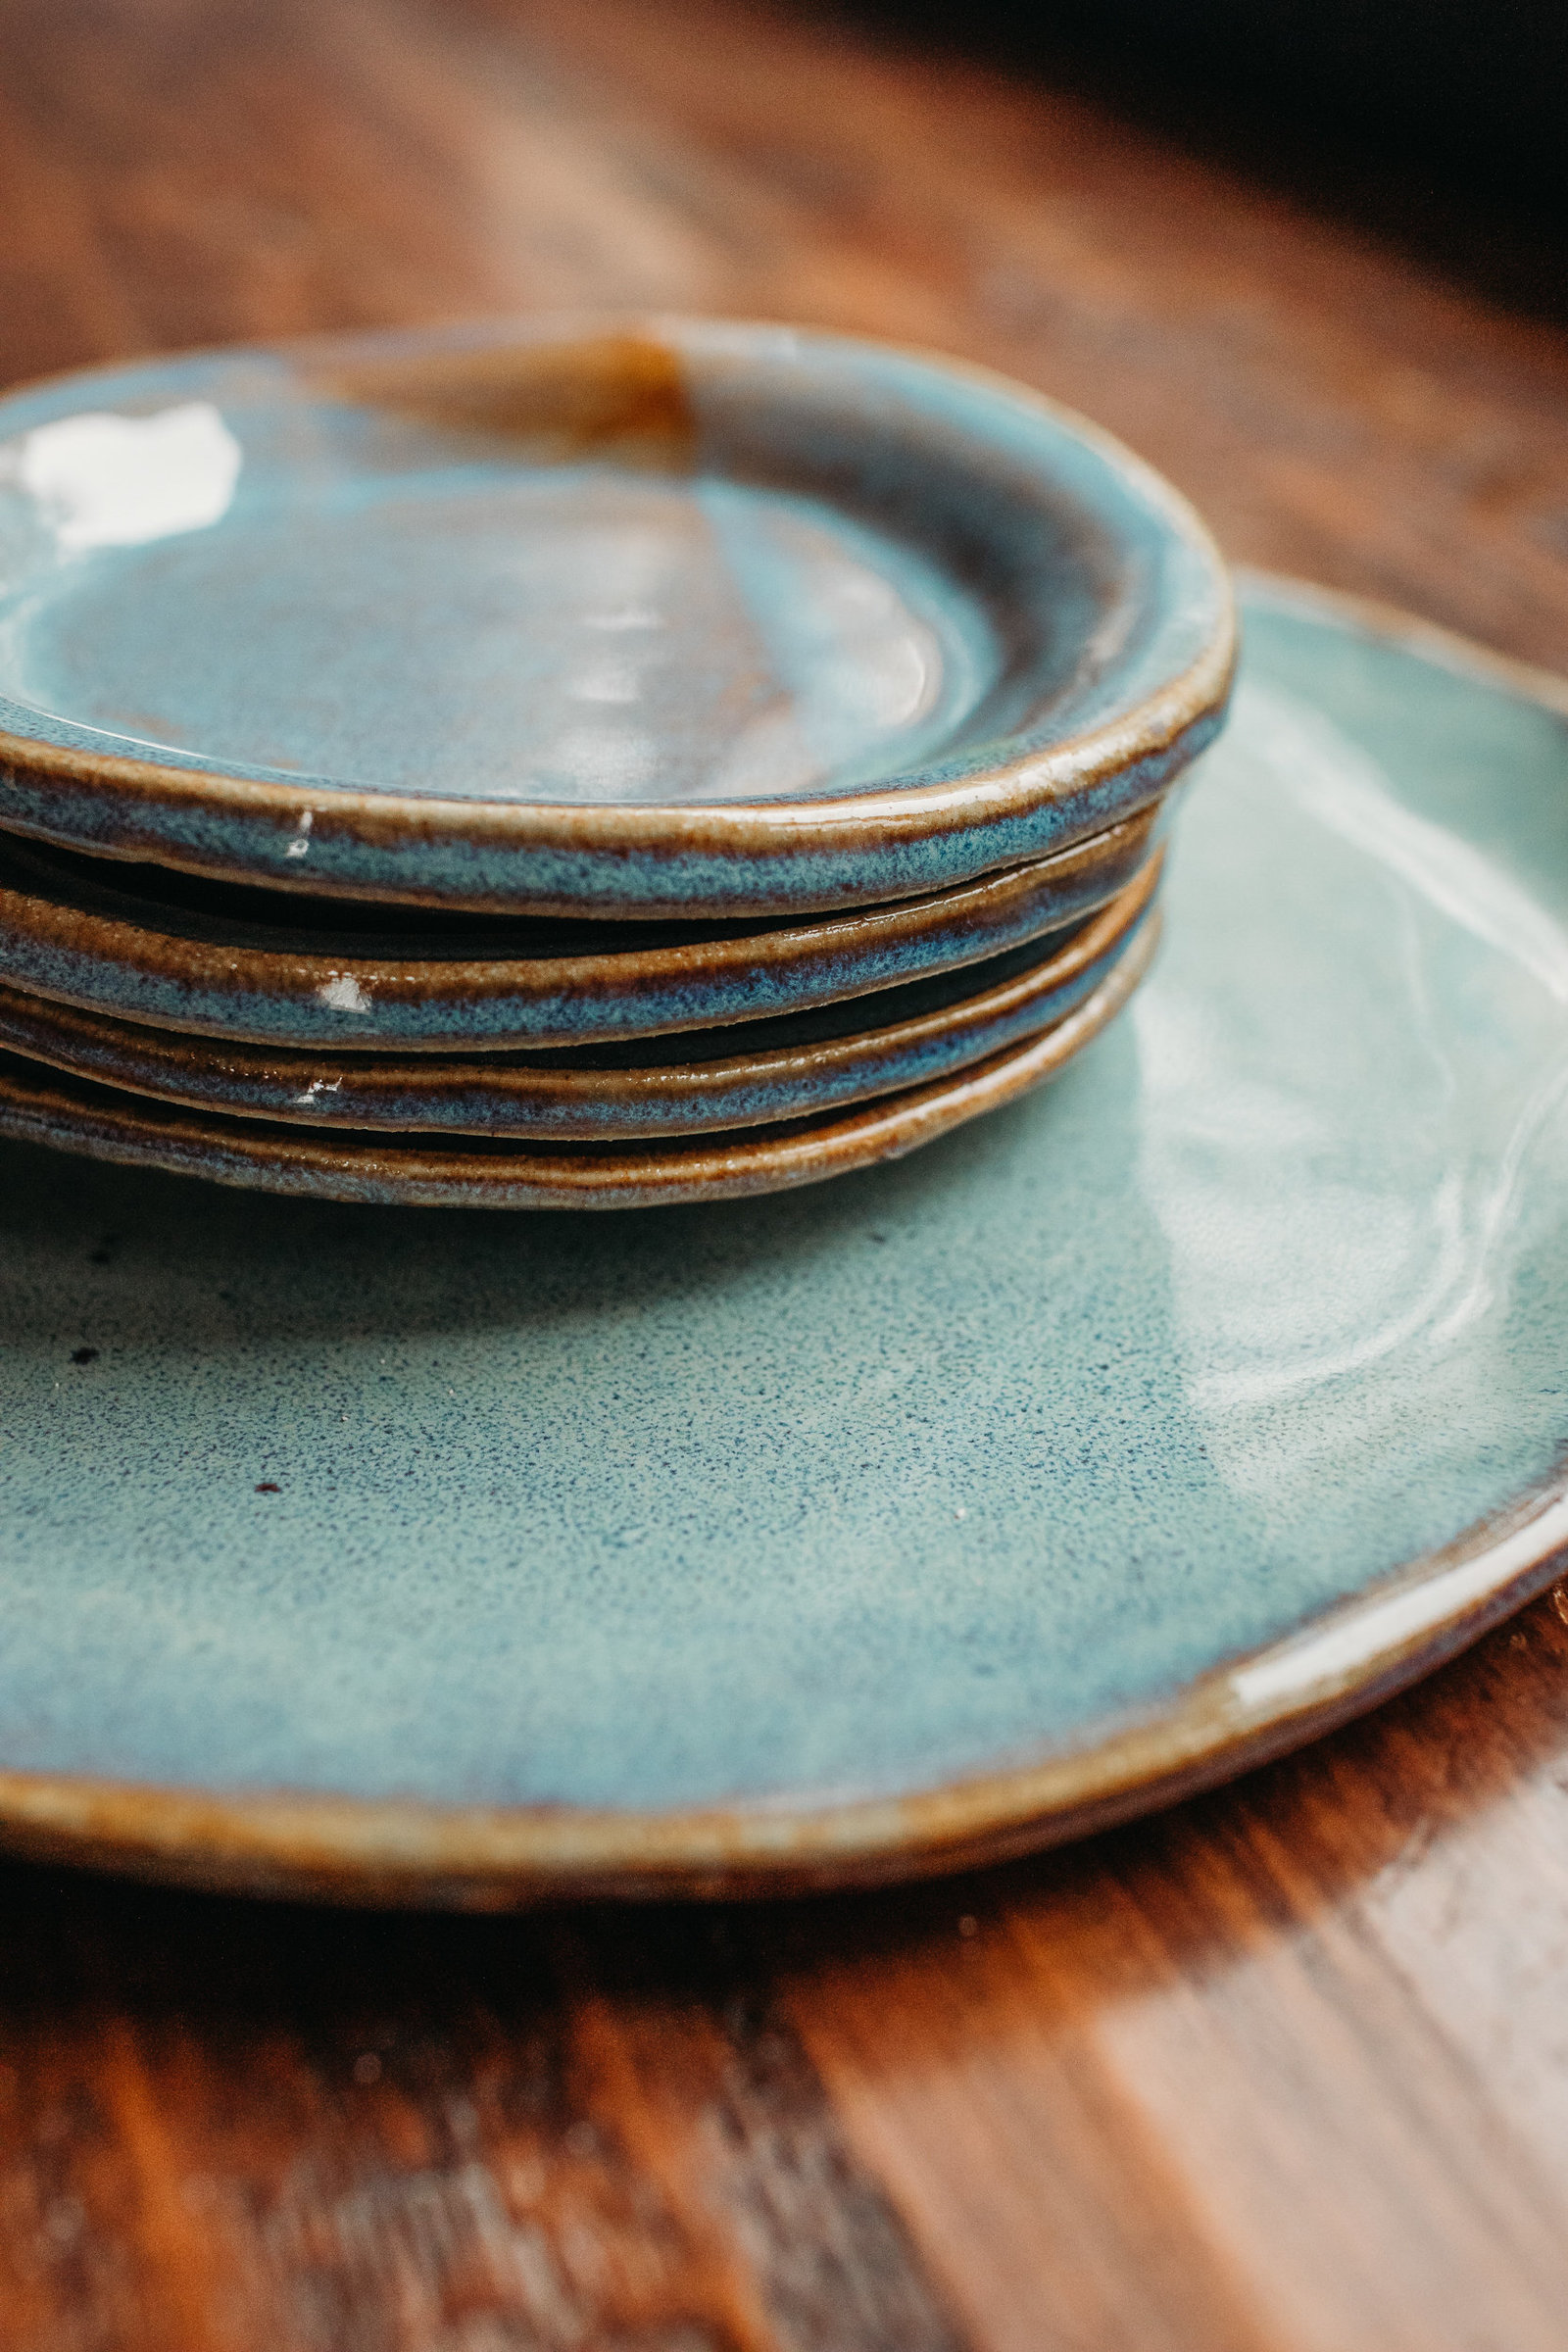 gold rimmed blue pottery plates for pottery product images